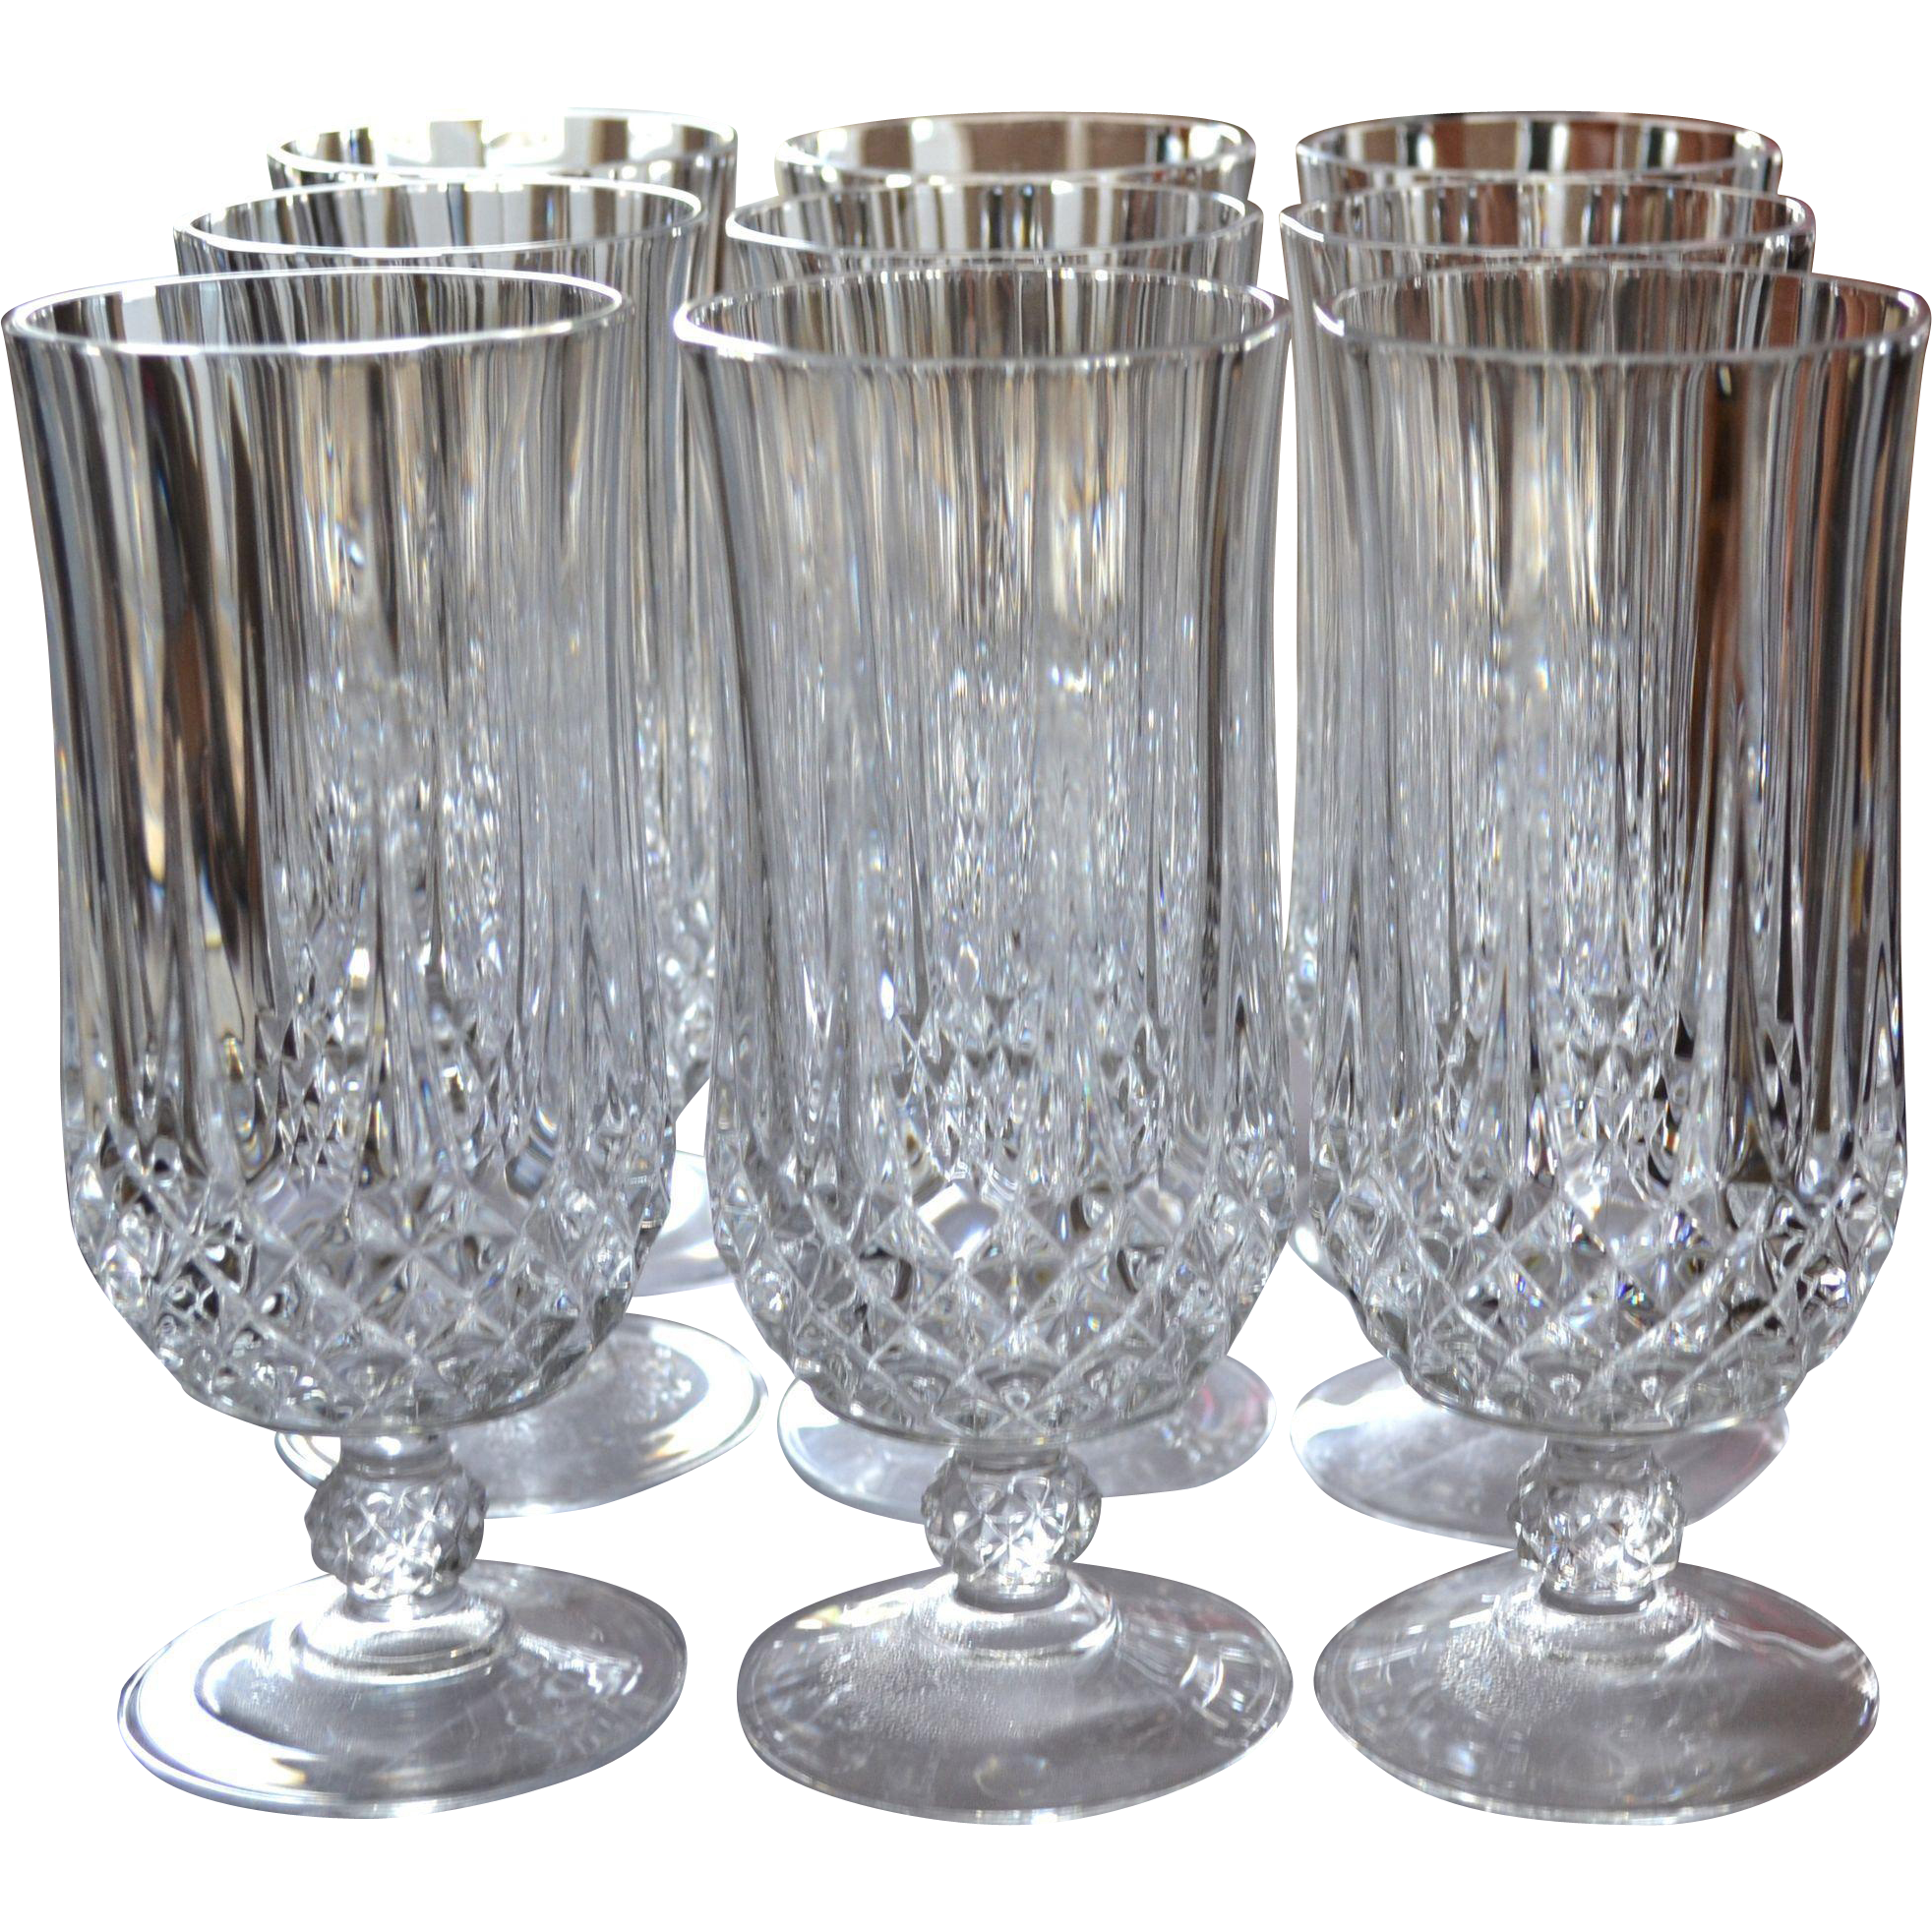 cristal d 39 arques longchamp set of 9 lead crystal iced tea glasses from kitschandcouture on ruby. Black Bedroom Furniture Sets. Home Design Ideas